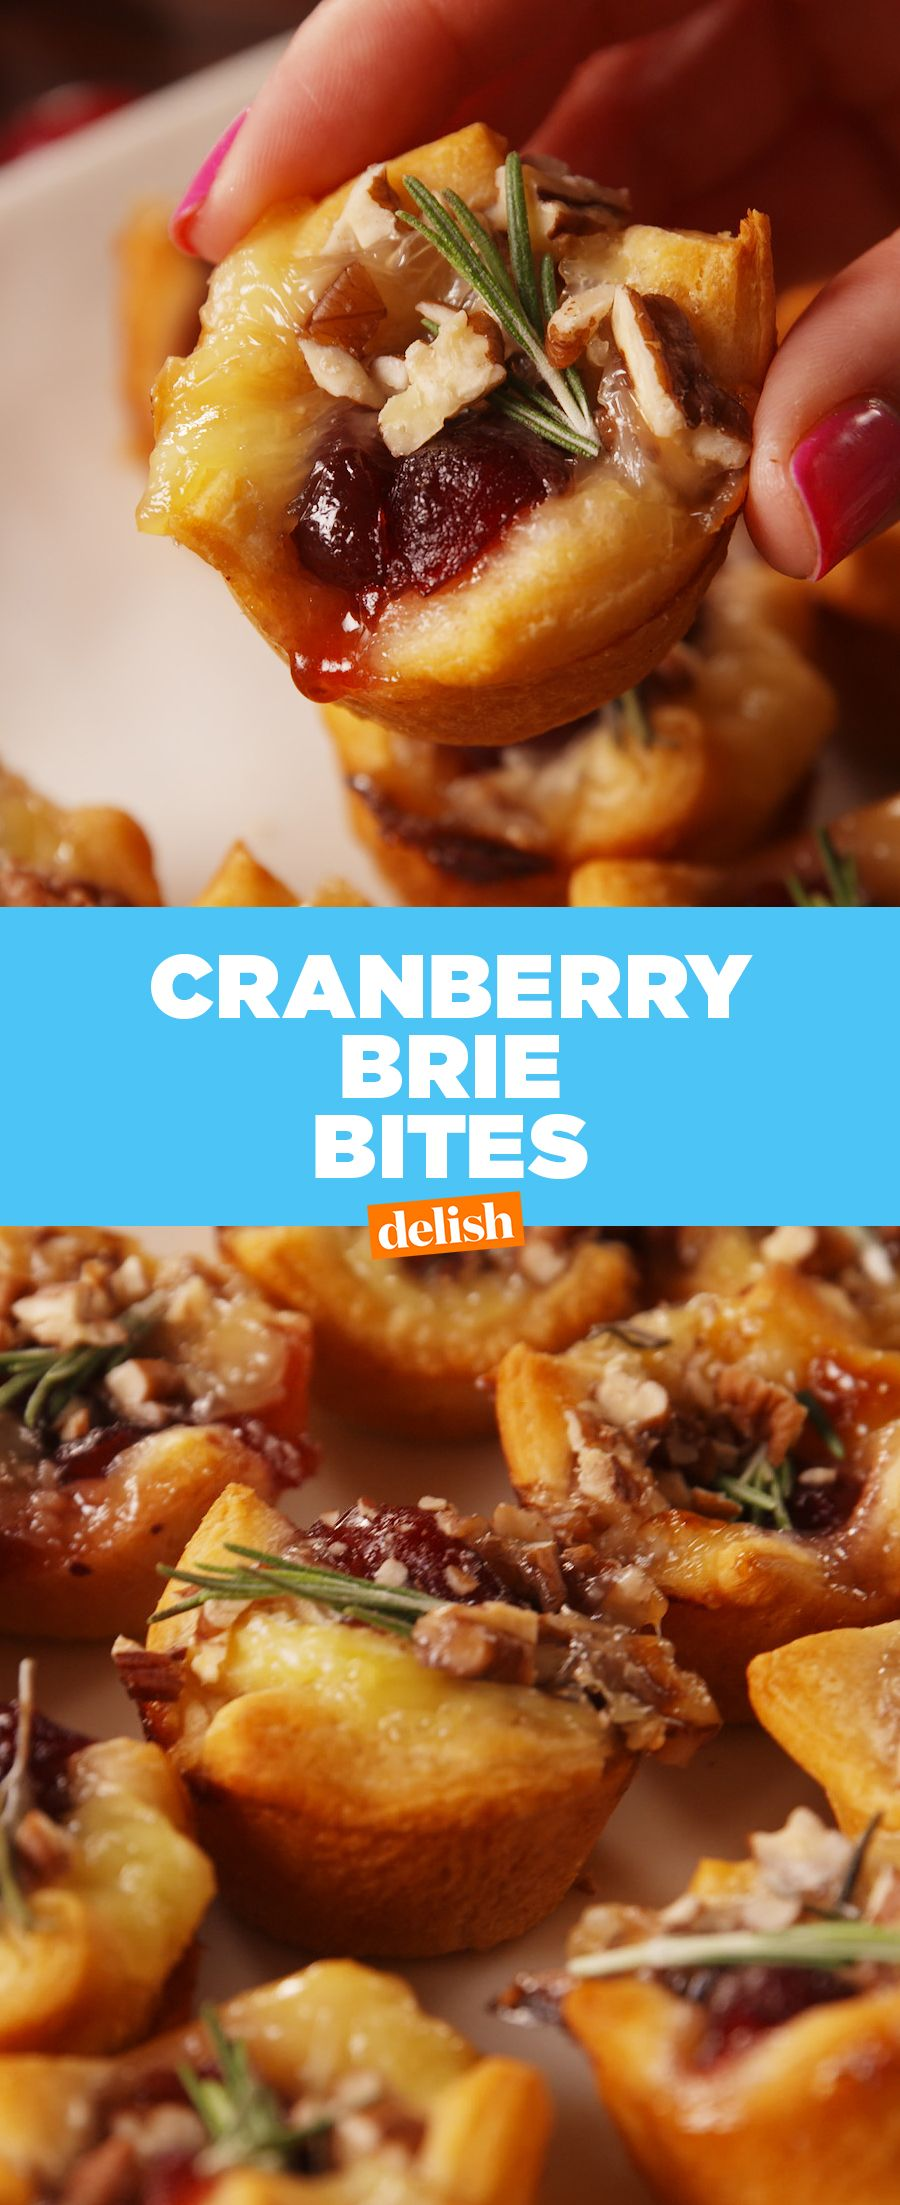 Cranberry brie bites ricetta mmm food appetizers for Cucinare jalapenos